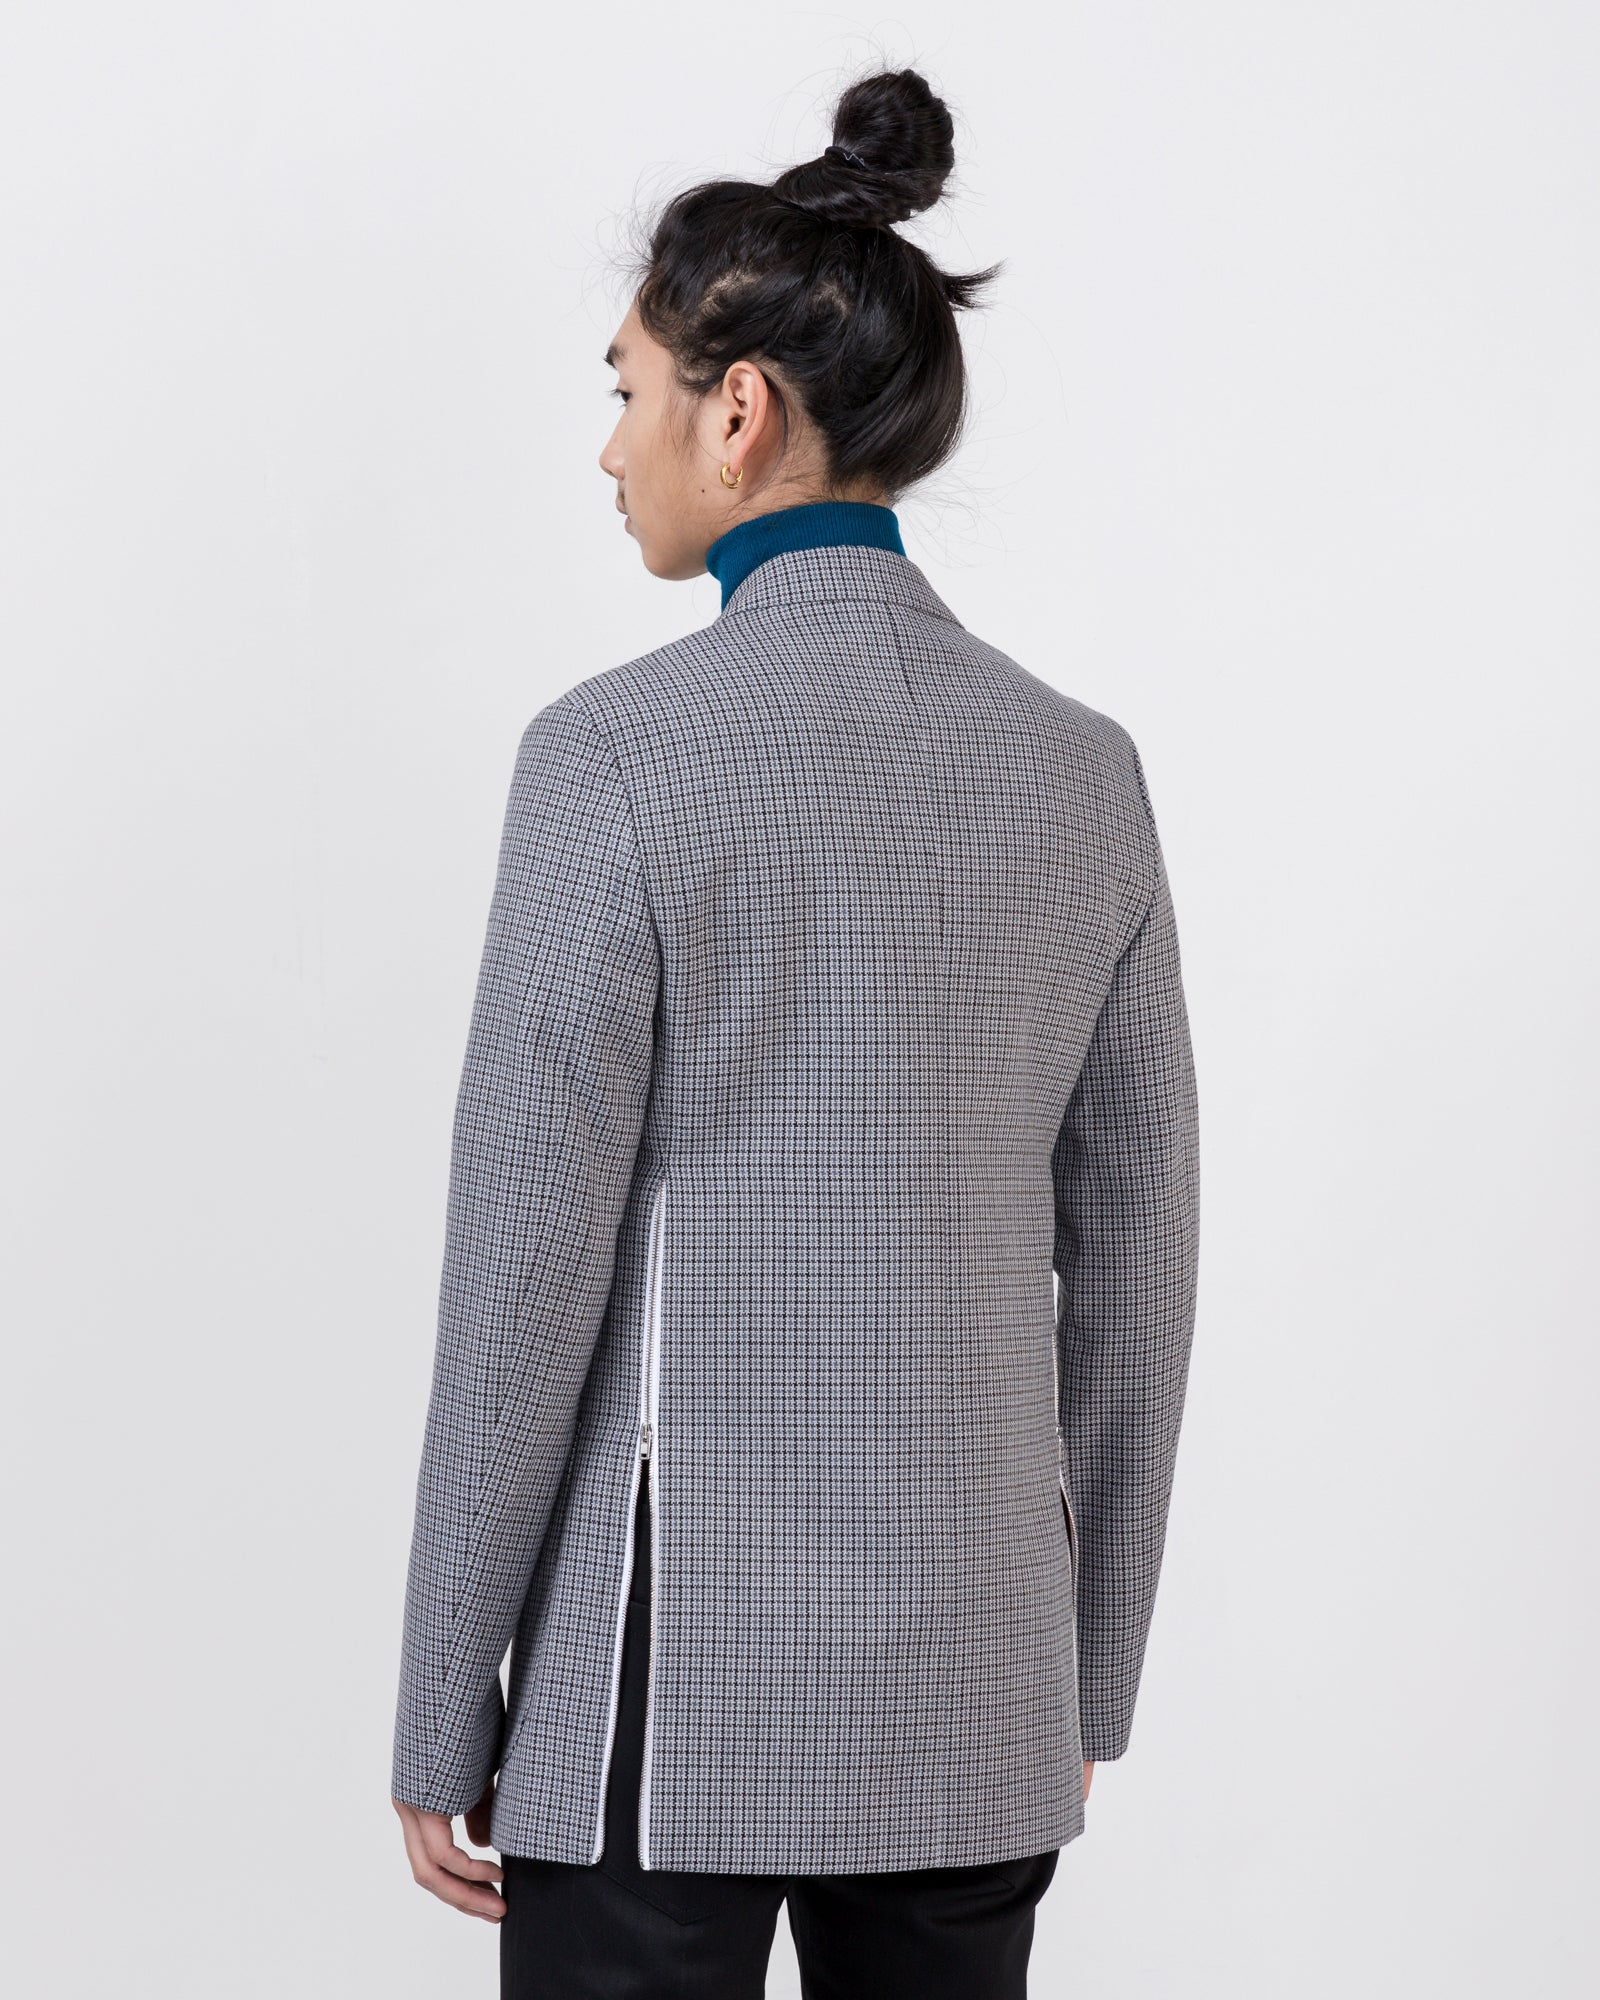 Blazer with Zips in Gray